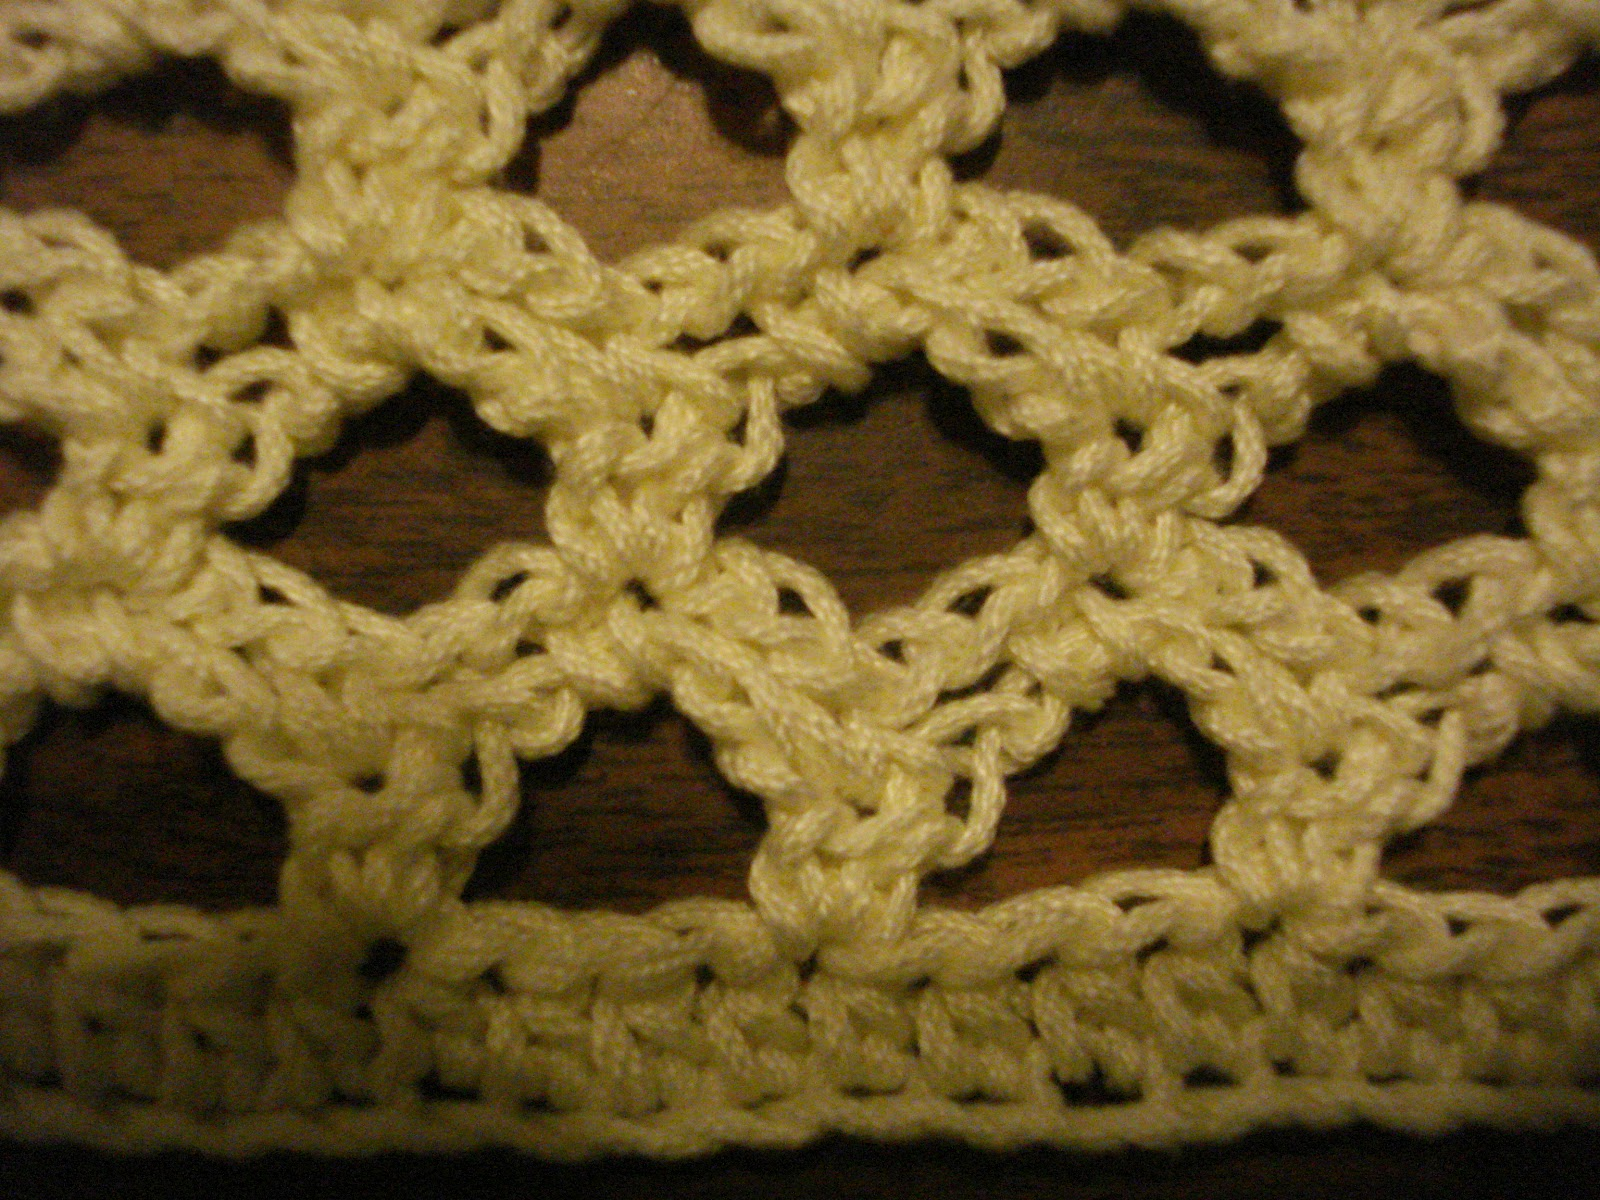 Crochet Lace Stitches : Download image Crochet Lace Stitch Pattern PC, Android, iPhone and ...